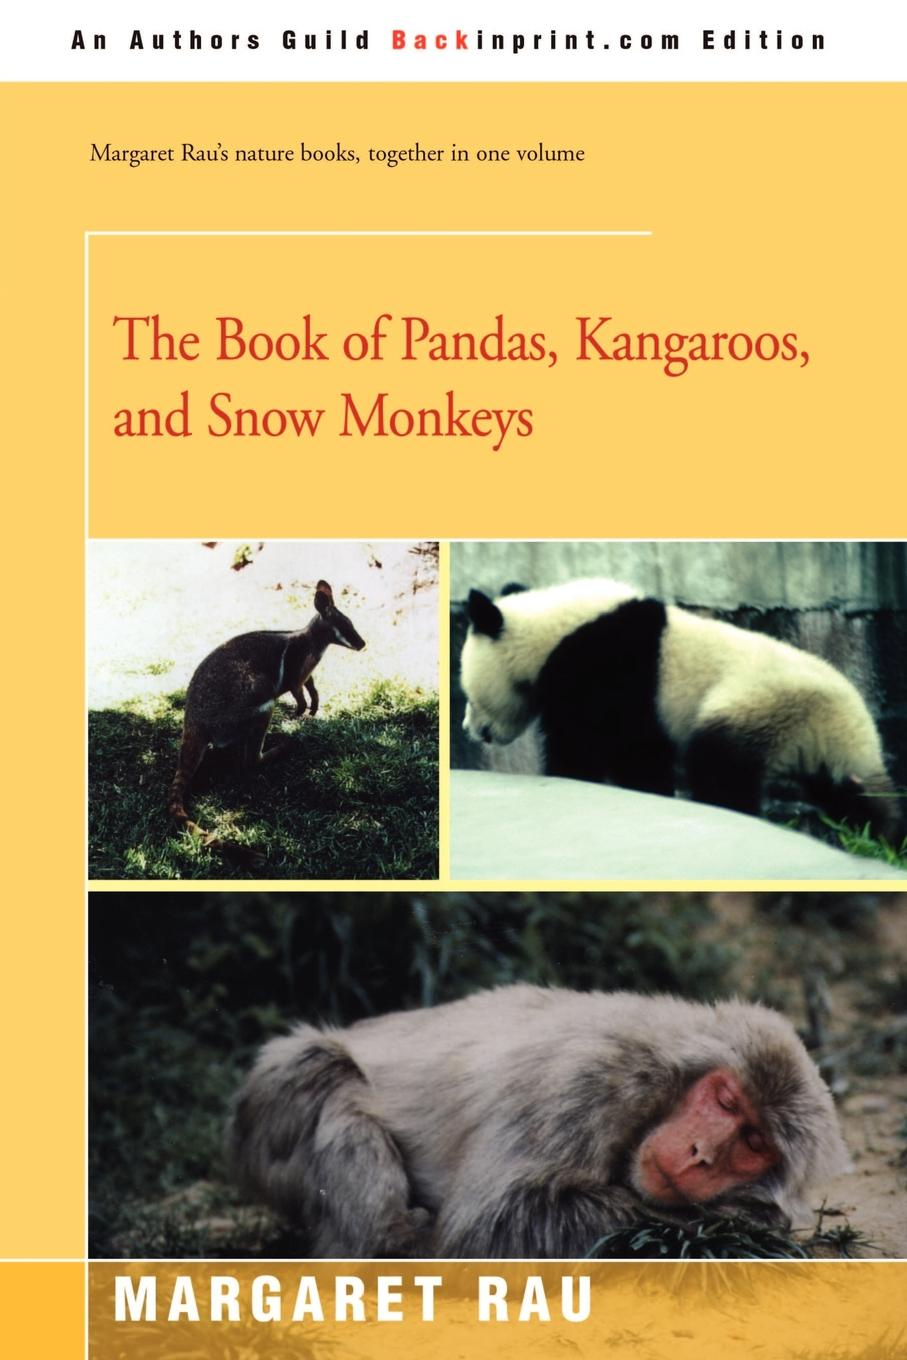 купить Margaret Rau The Book of Pandas, Kangaroos, and Snow Monkeys по цене 1989 рублей